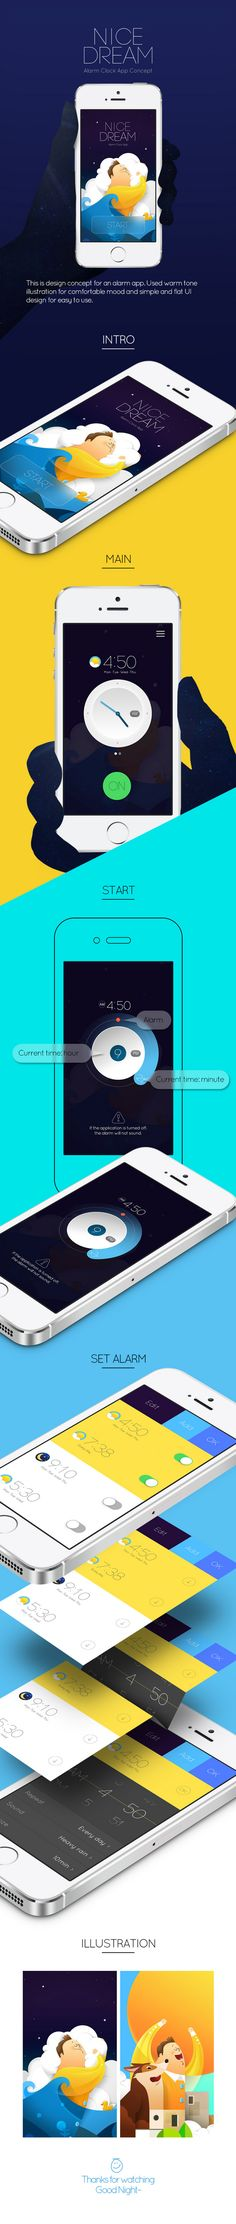 Alarm app Concept / Nice dream : This is design concept for an alarm app. Used warm tone illustration for comfortable mood and simple and flat UI design for easy to use.